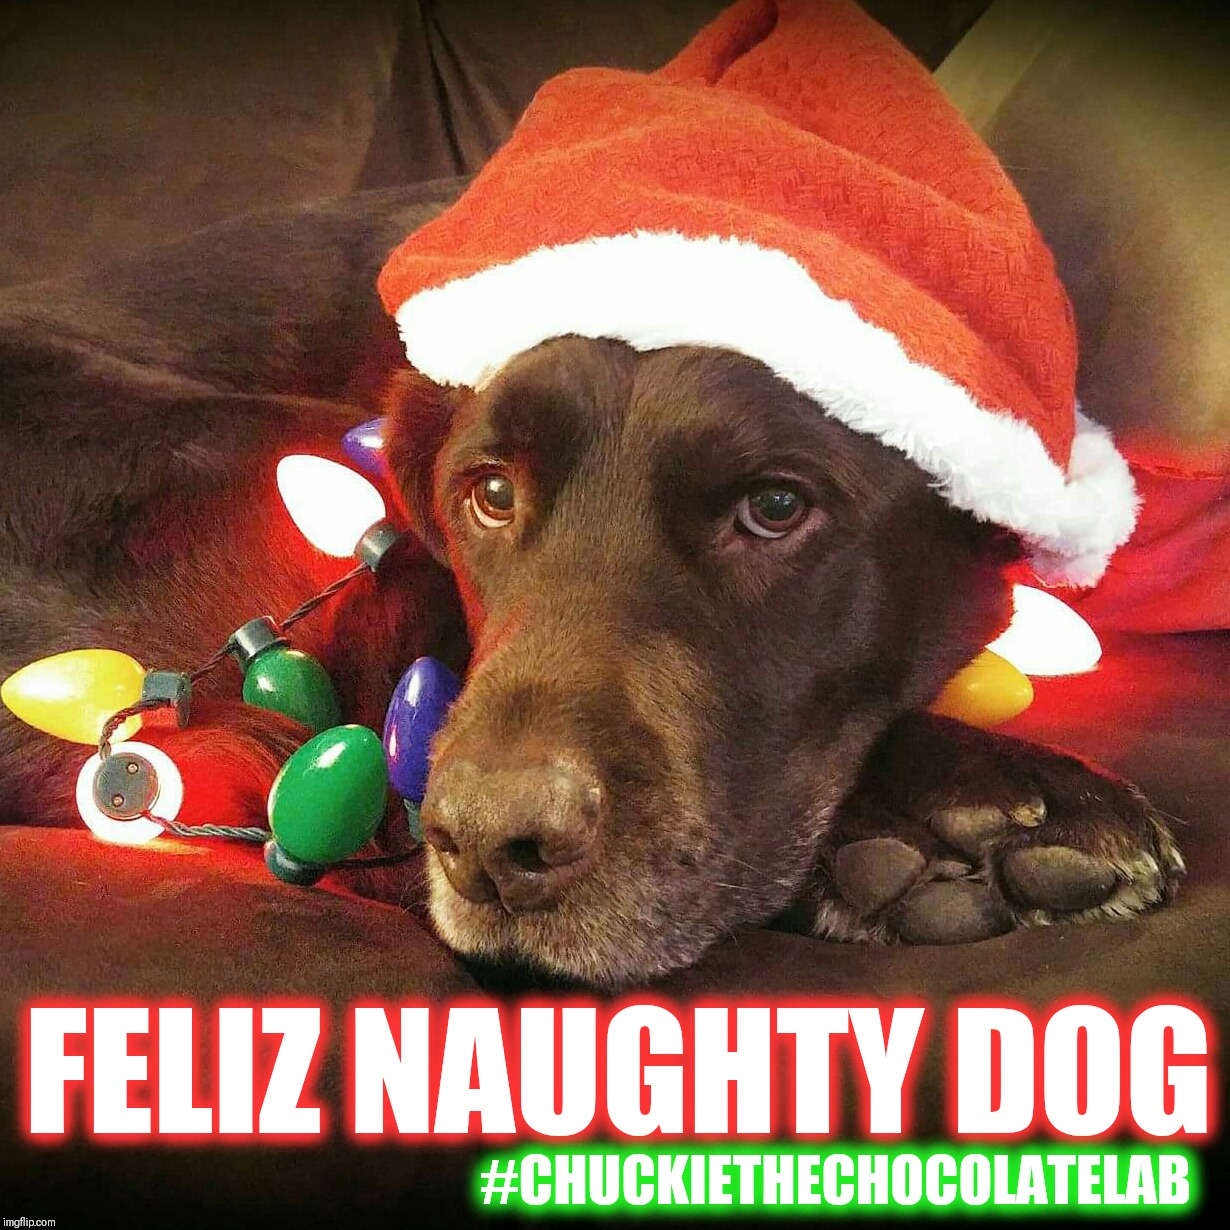 Feliz Naughty Dog | FELIZ NAUGHTY DOG #CHUCKIETHECHOCOLATELAB | image tagged in chuckie the chocolate lab teamchuckie,feliz naughty dog,christmas,funny,memes,dogs | made w/ Imgflip meme maker